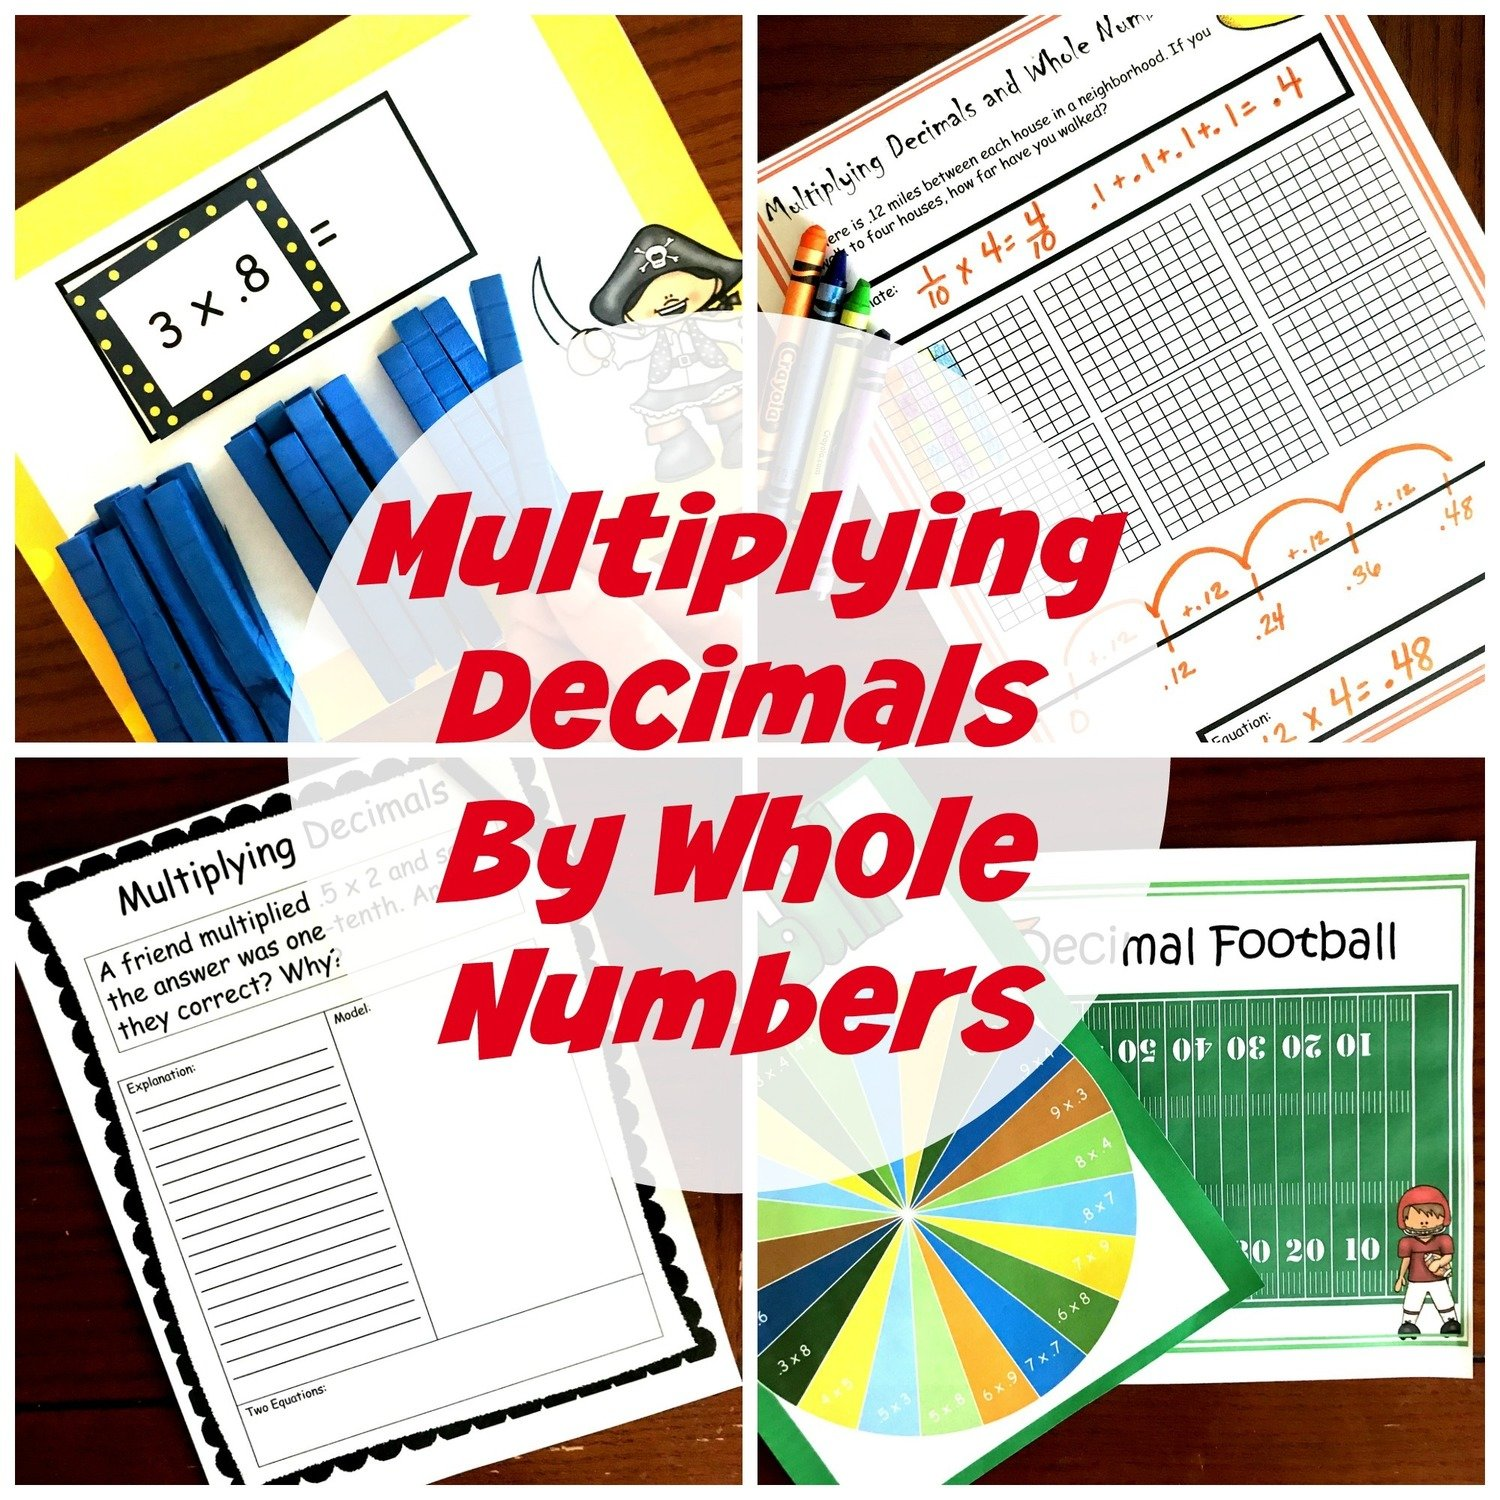 5 Multiplying Decimals By Whole Numbers